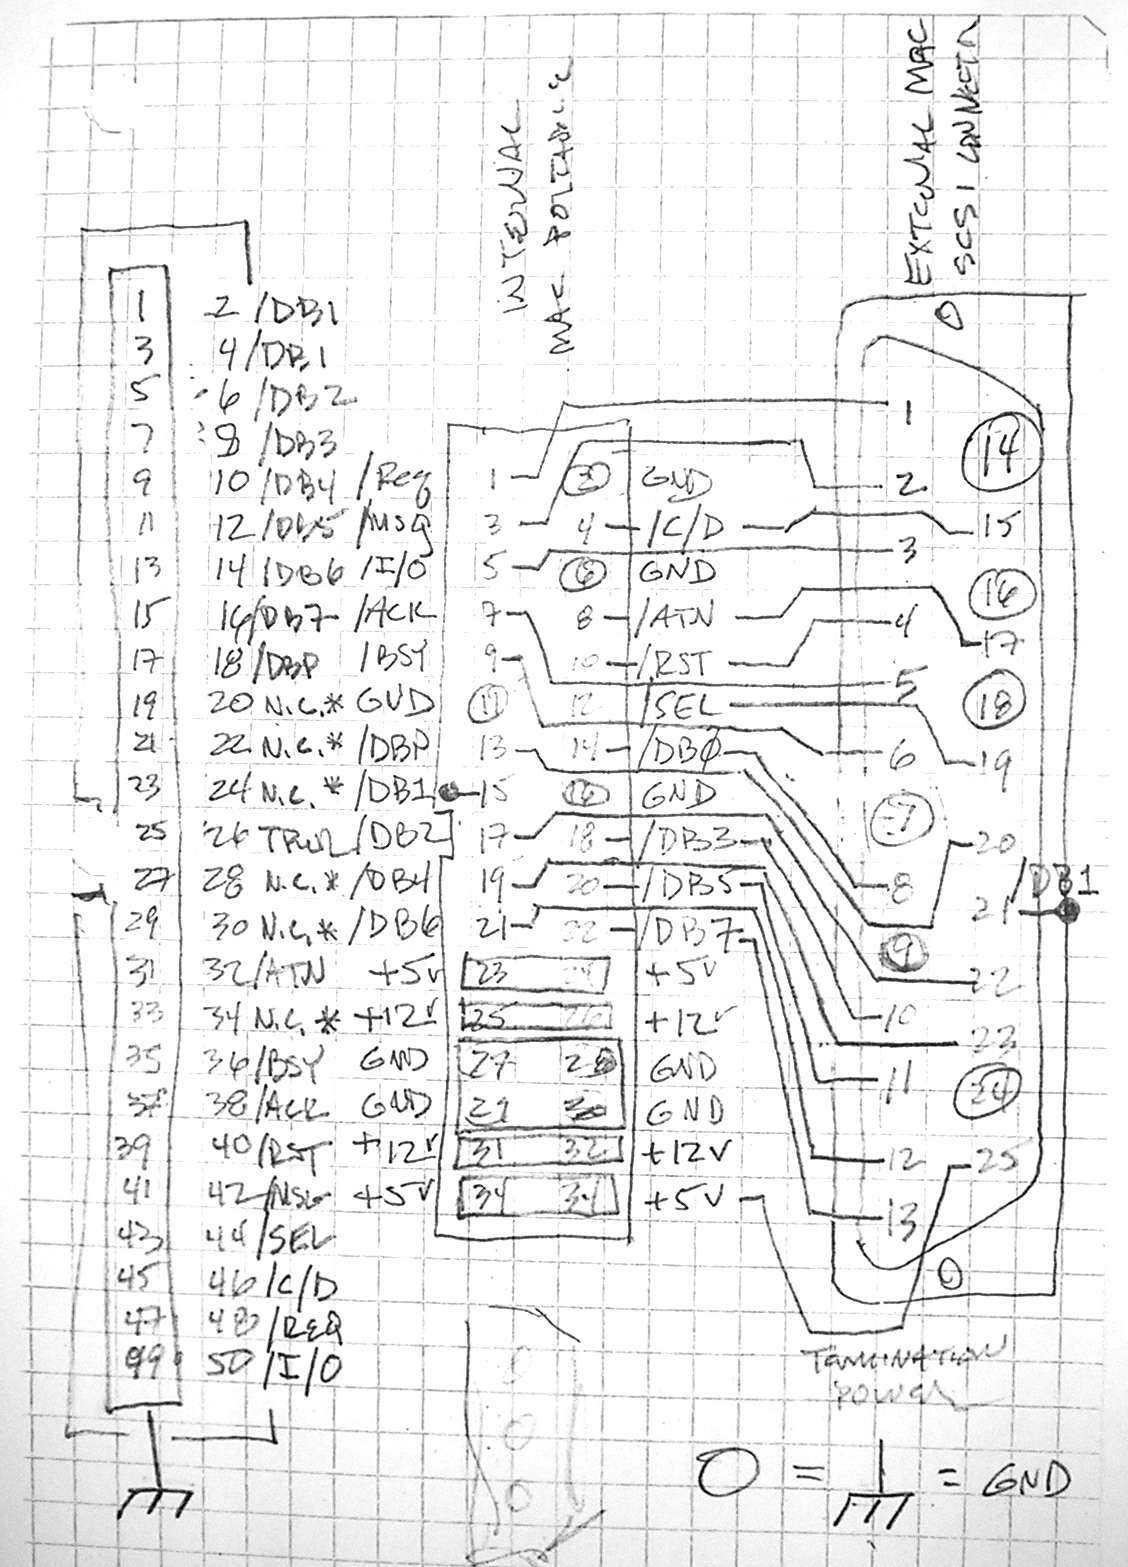 Apple Lightning Cable Wiring Diagram in addition Numero De Pines Y Contactos De Los further Camera Plug Adapter together with 3 Pin Aux Switch Wiring Diagram in addition Hard Drive Connector Pinout. on apple 30 pin wiring diagram